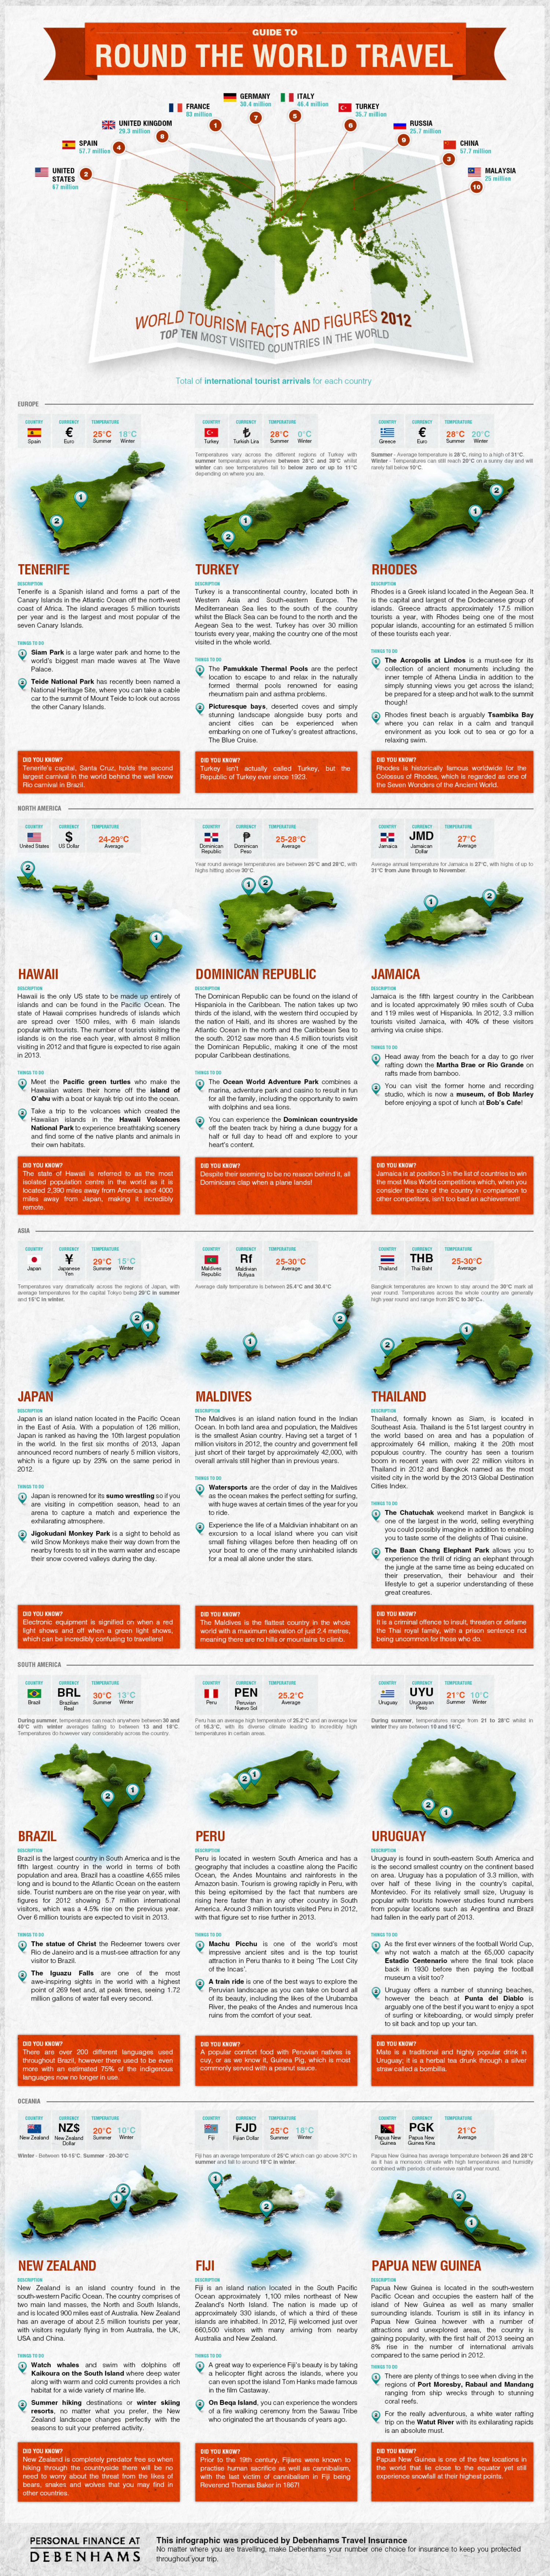 Top 10 Guide to Round the World Travel Infographic